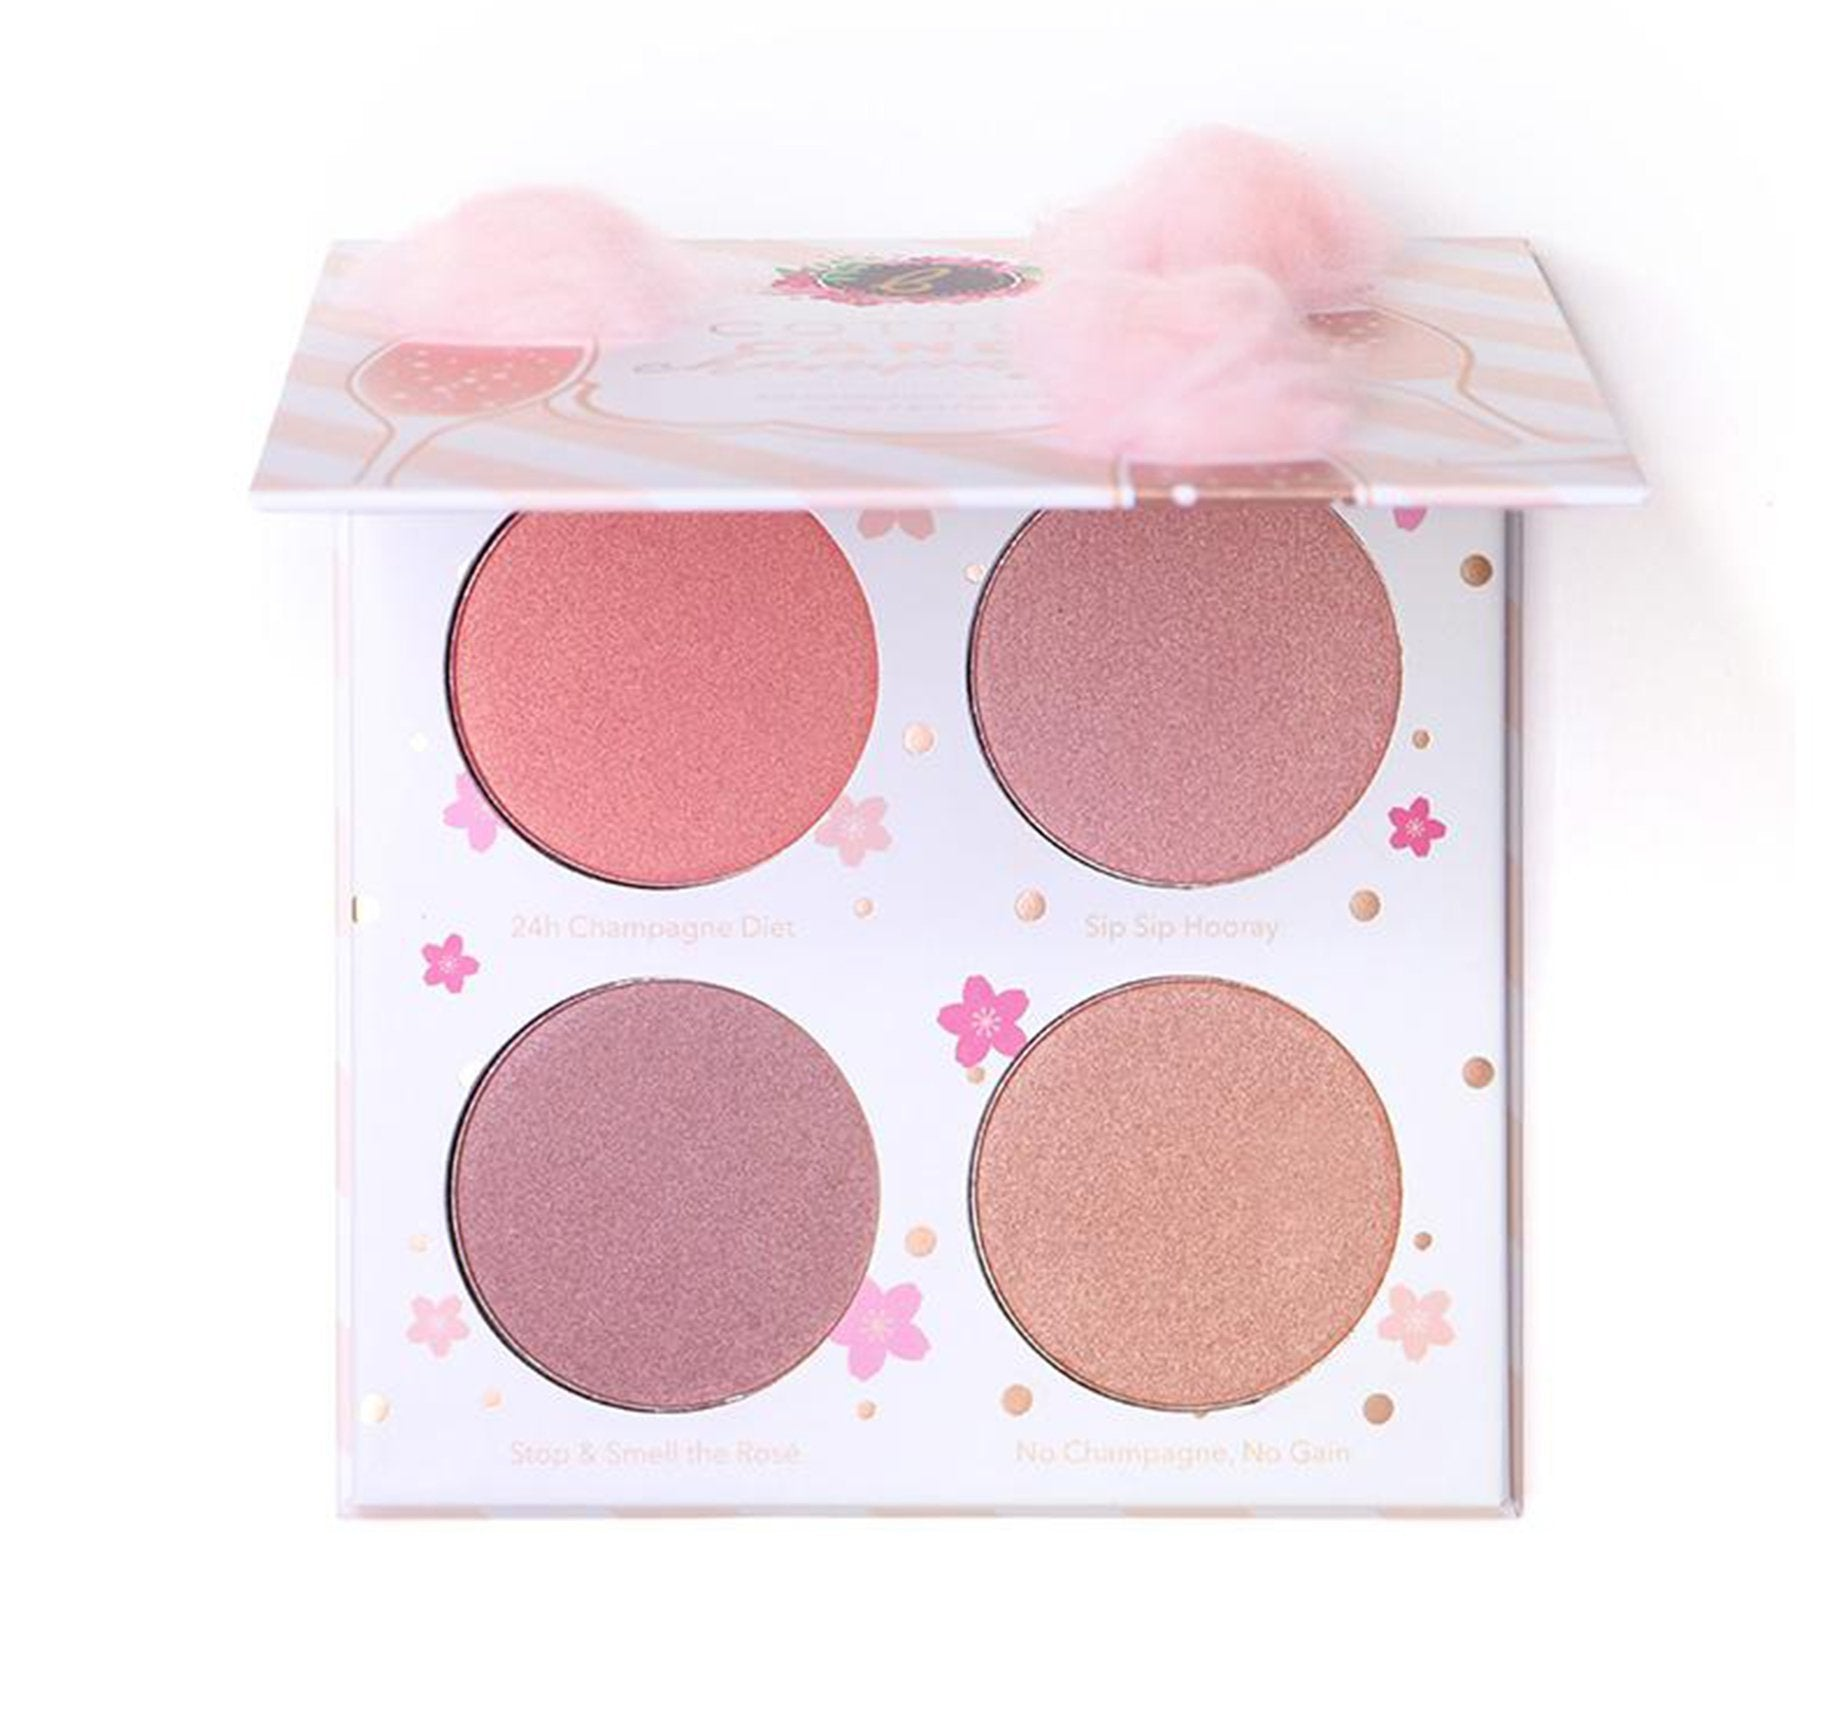 COTTON CANDY CHAMPAGNE BLUSH PALETTE, view larger image